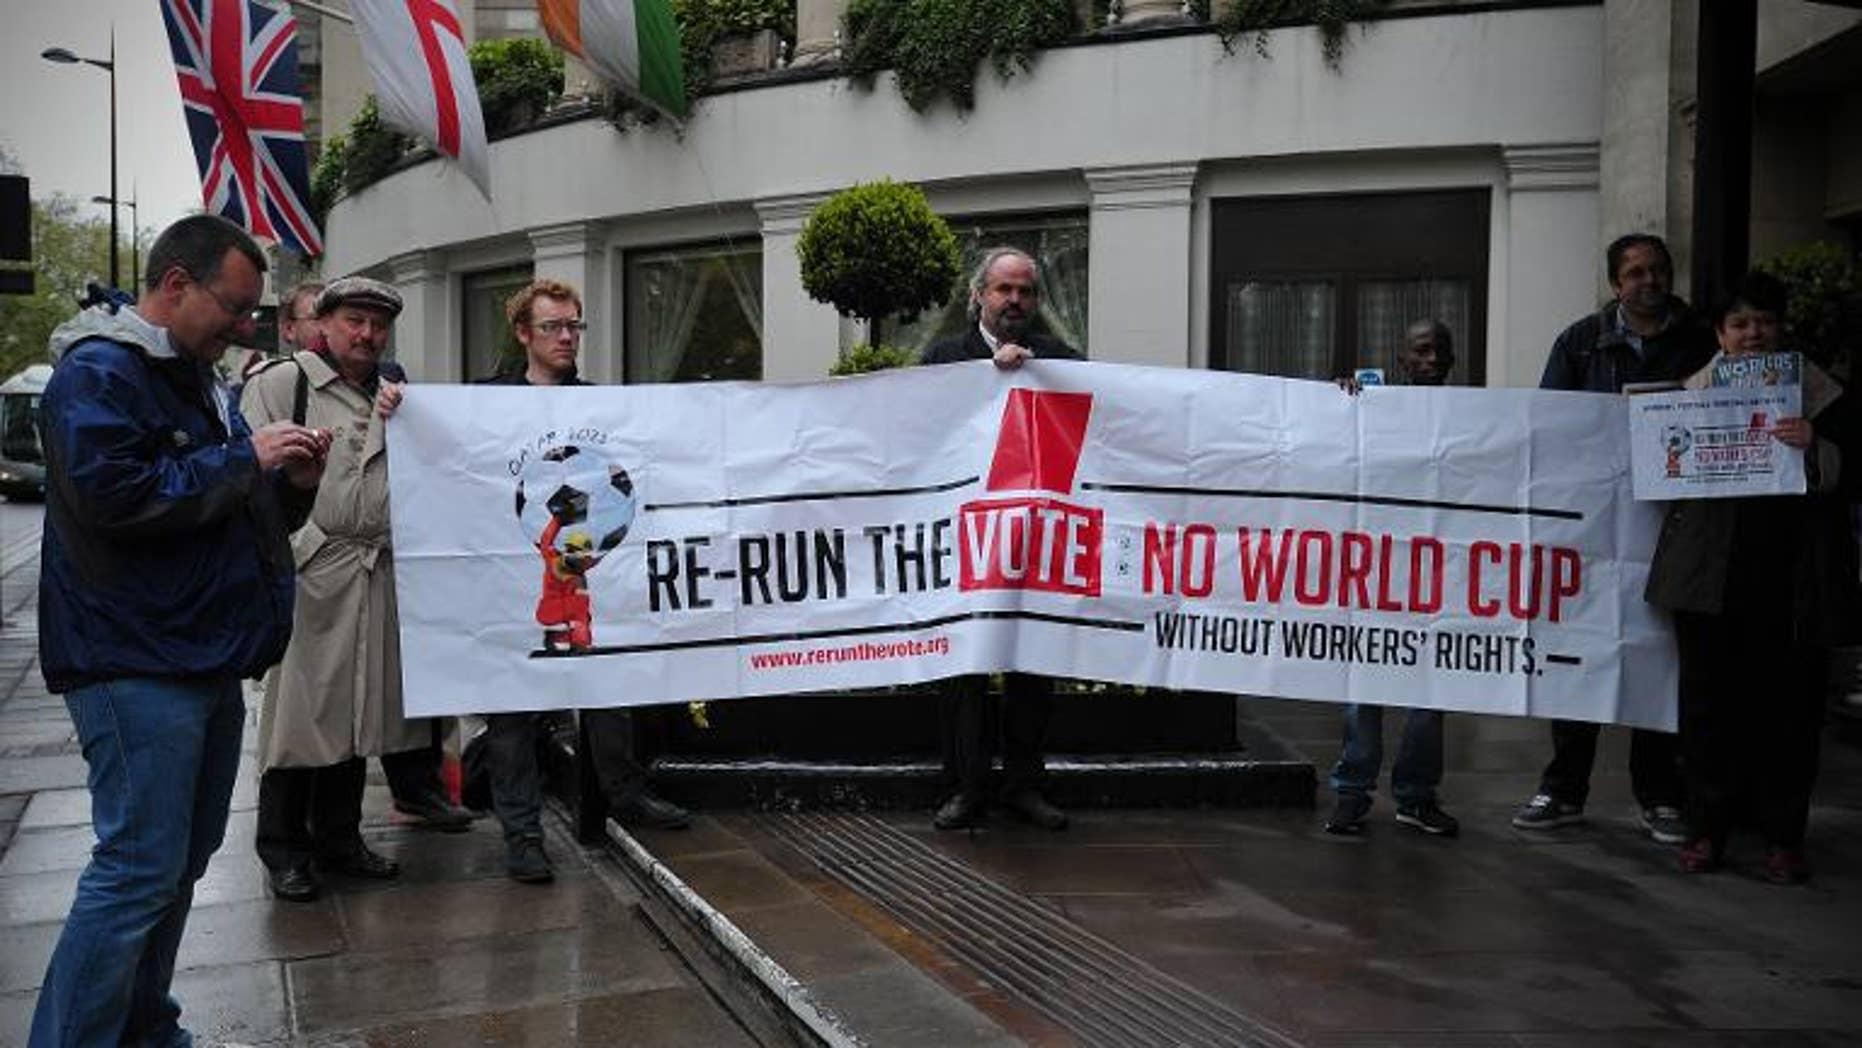 Protesters demonstrate against the perceived exploitation of workers in Qatar, the location of the 2022 World Cup, before a UEFA Congress in central London on May 24, 2013